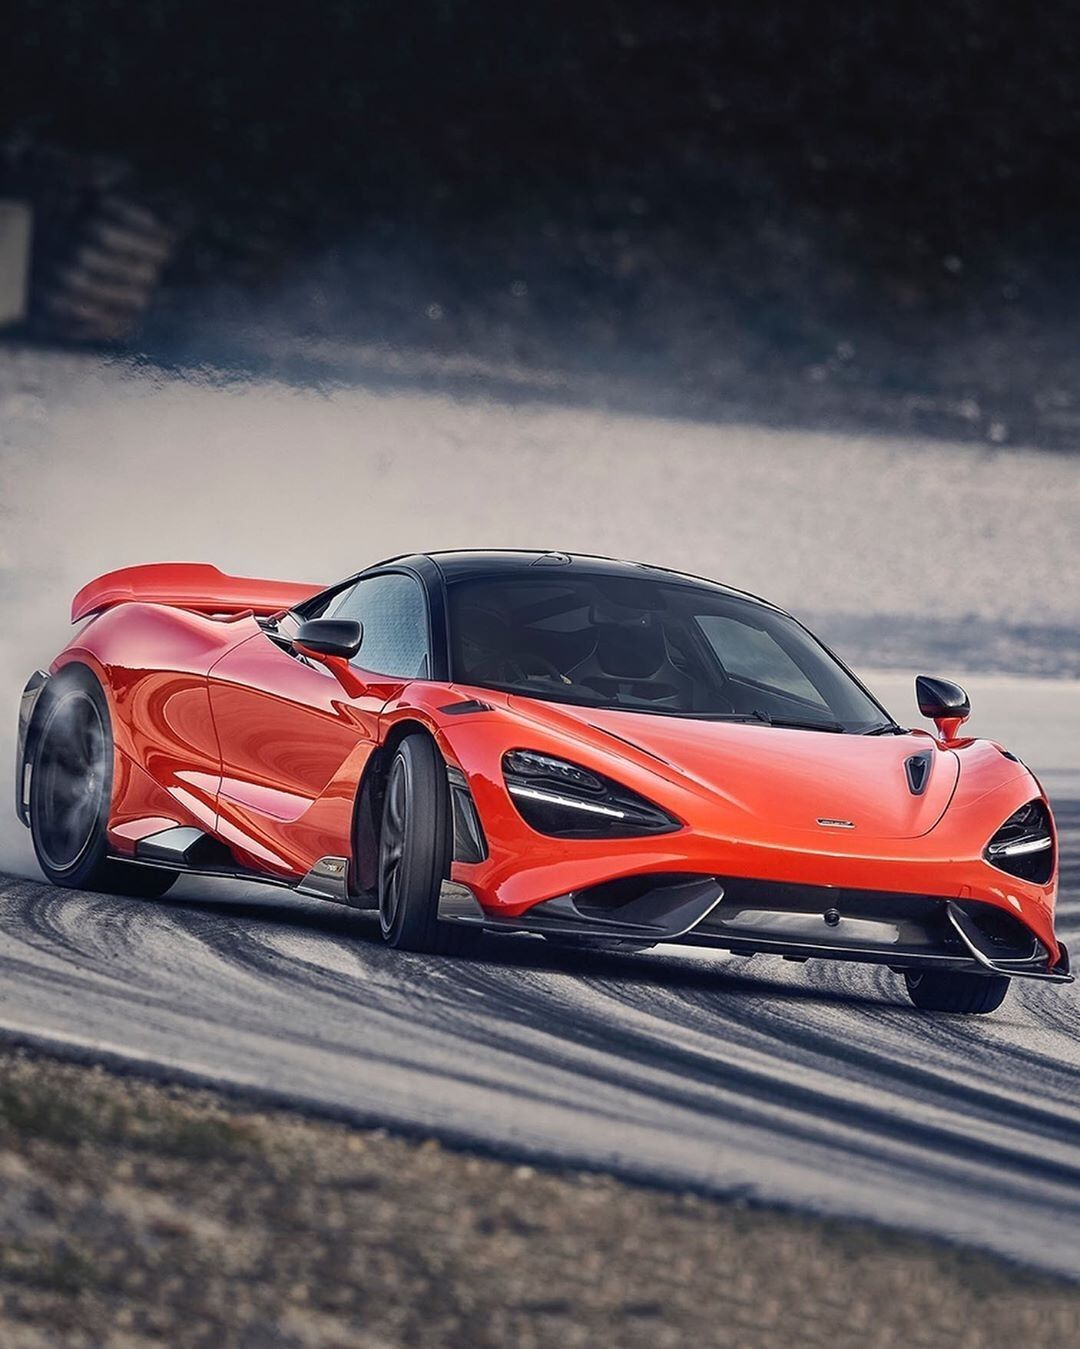 Pin By The Seduction Domain On Mclaren In 2020 Car And Driver Super Cars Car